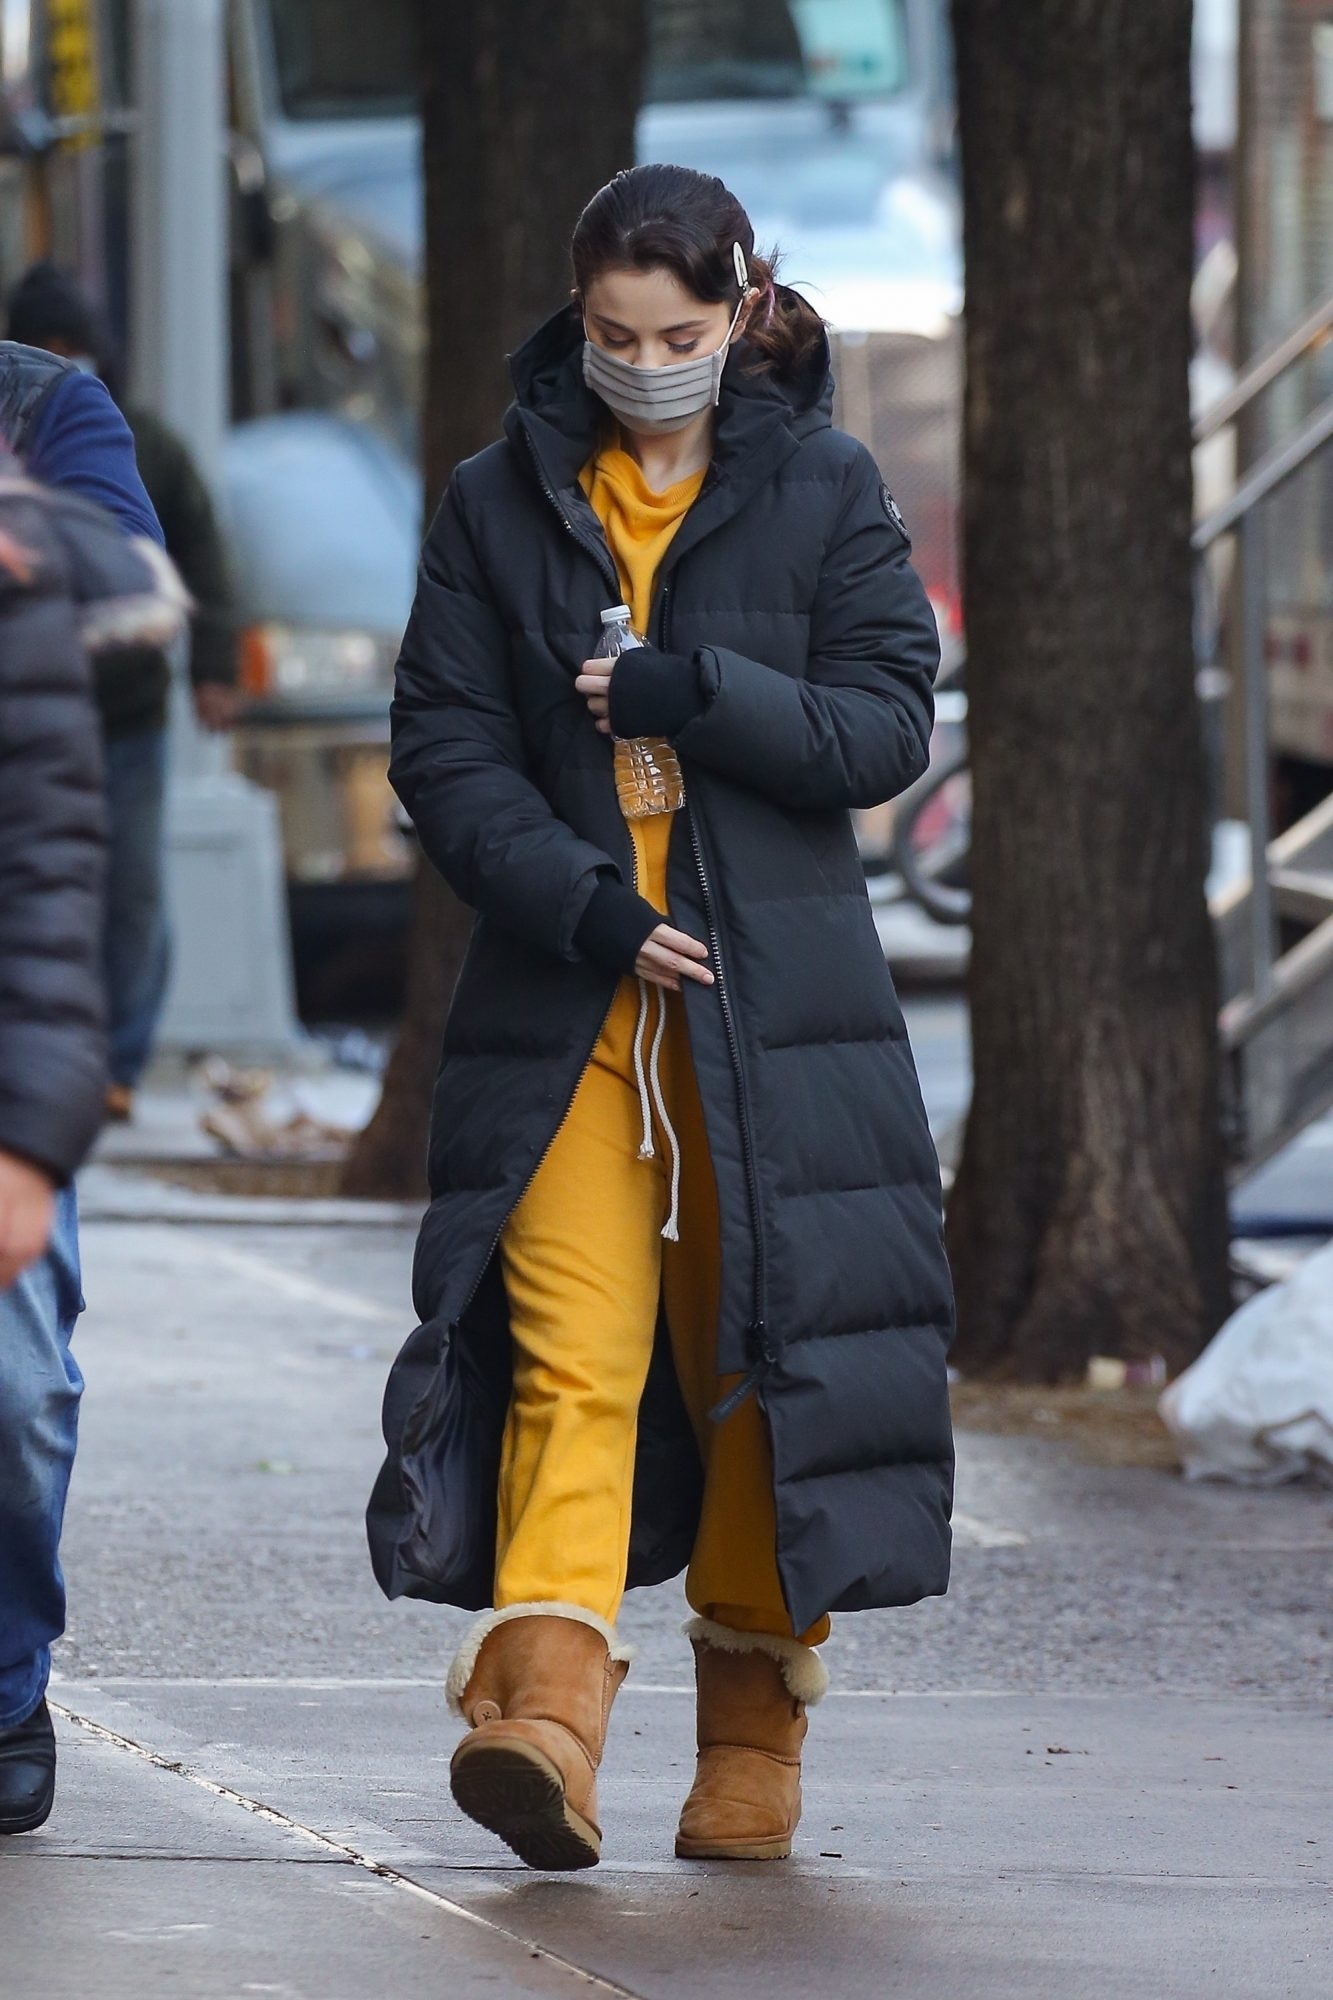 Selena Gomez looks stylish in a yellow outfit and a Canada Goose long coat on the set of 'Only Murders in the Building' in New York